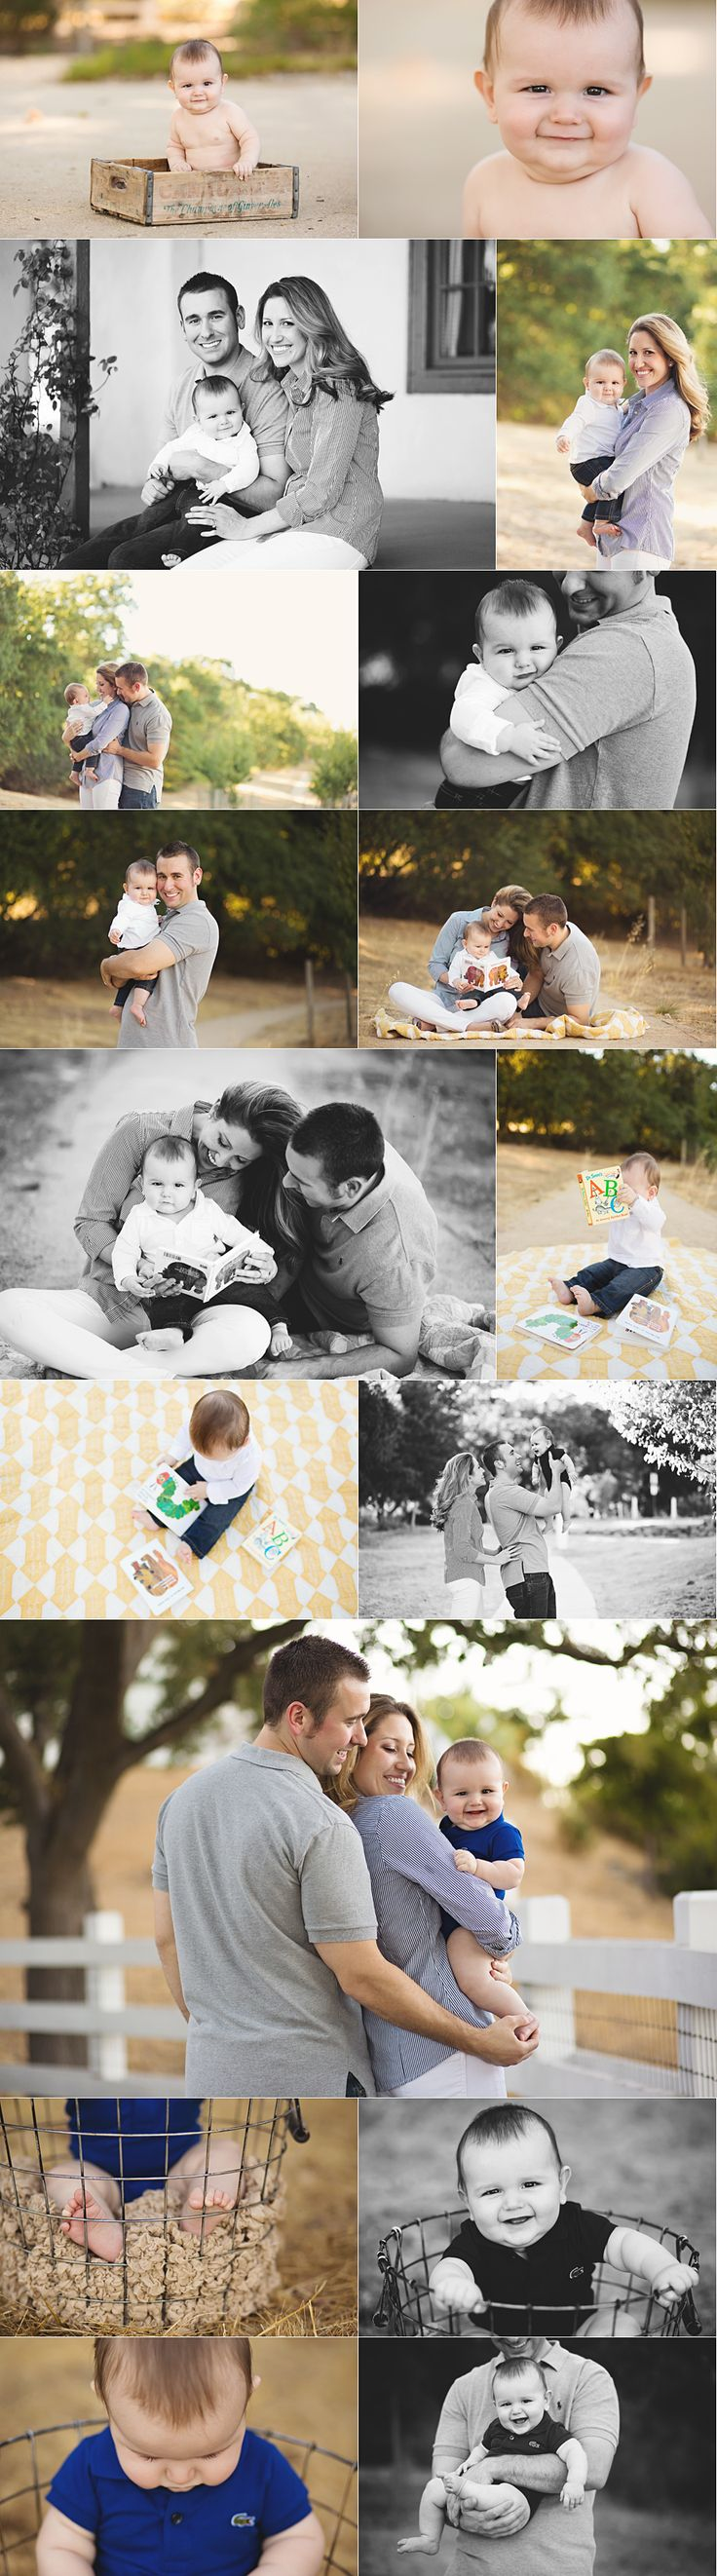 6 month session | corinne mccombs photography